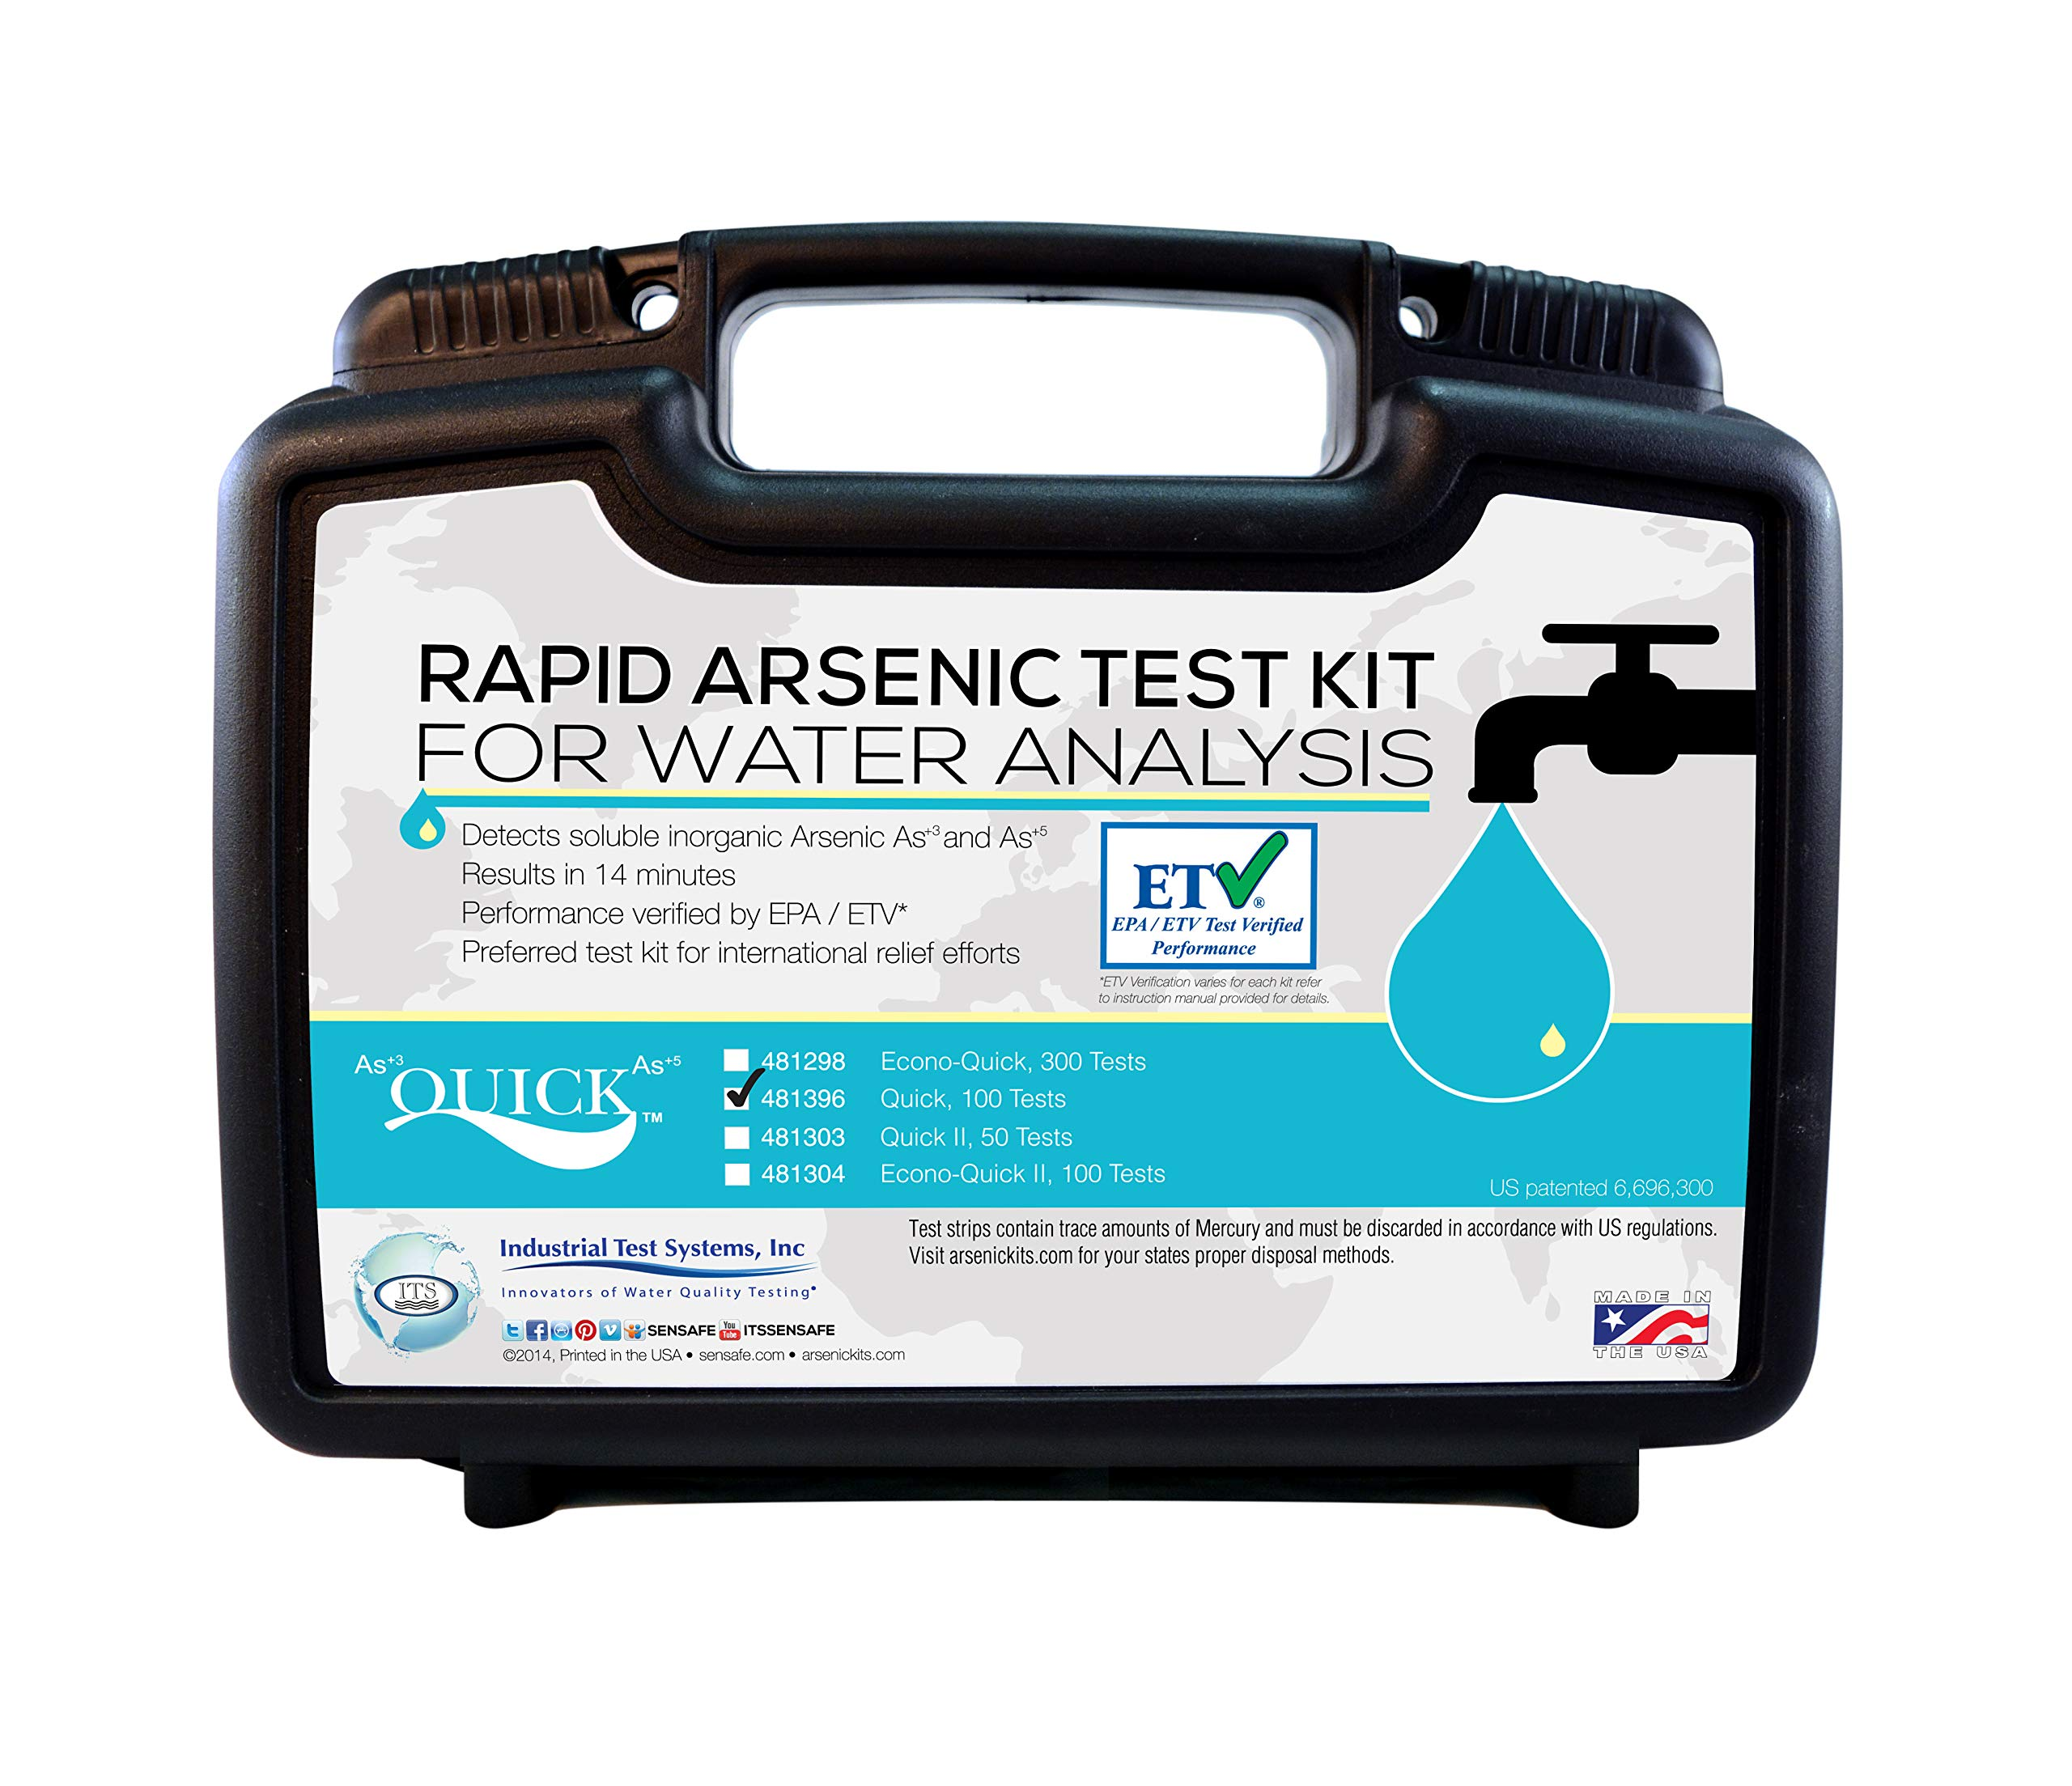 Industrial Test Systems Quick 481396 Arsenic for Water Quality Testing, 100 Tests, 12 Minutes Test Time by Industrial Test Systems